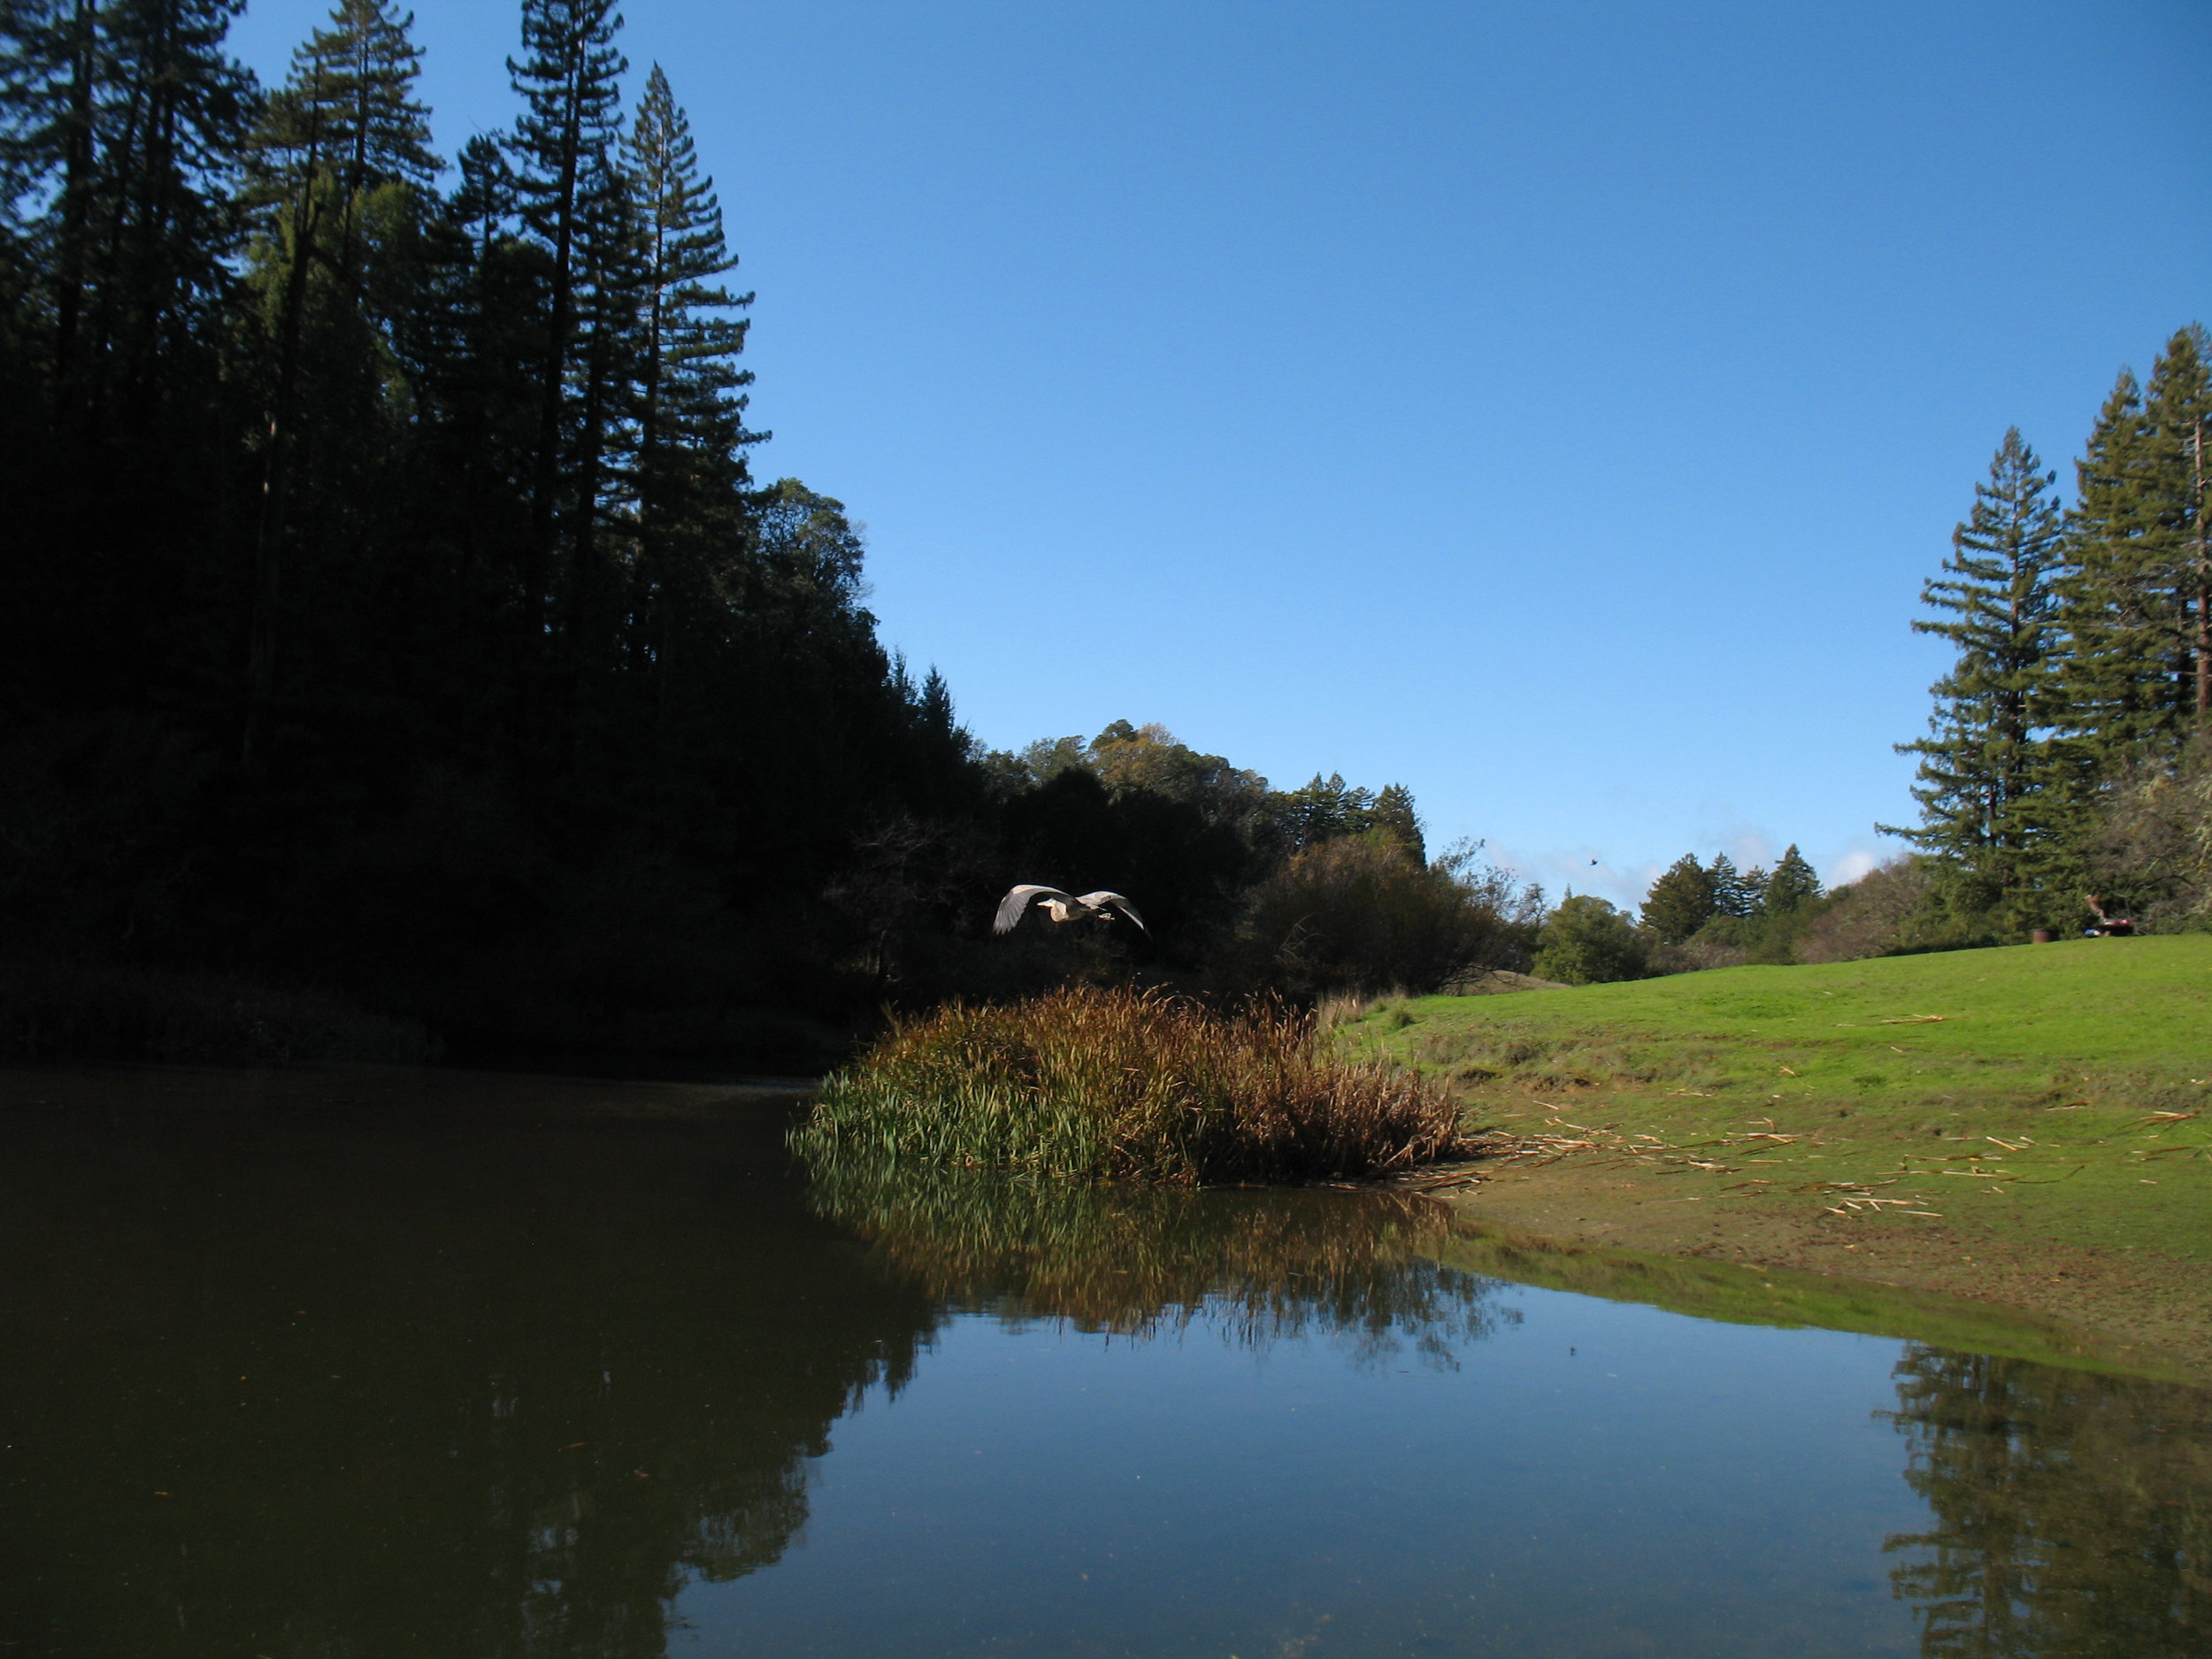 Bullfrog Pond, Austin Creek State Recreation Area, Guerneville